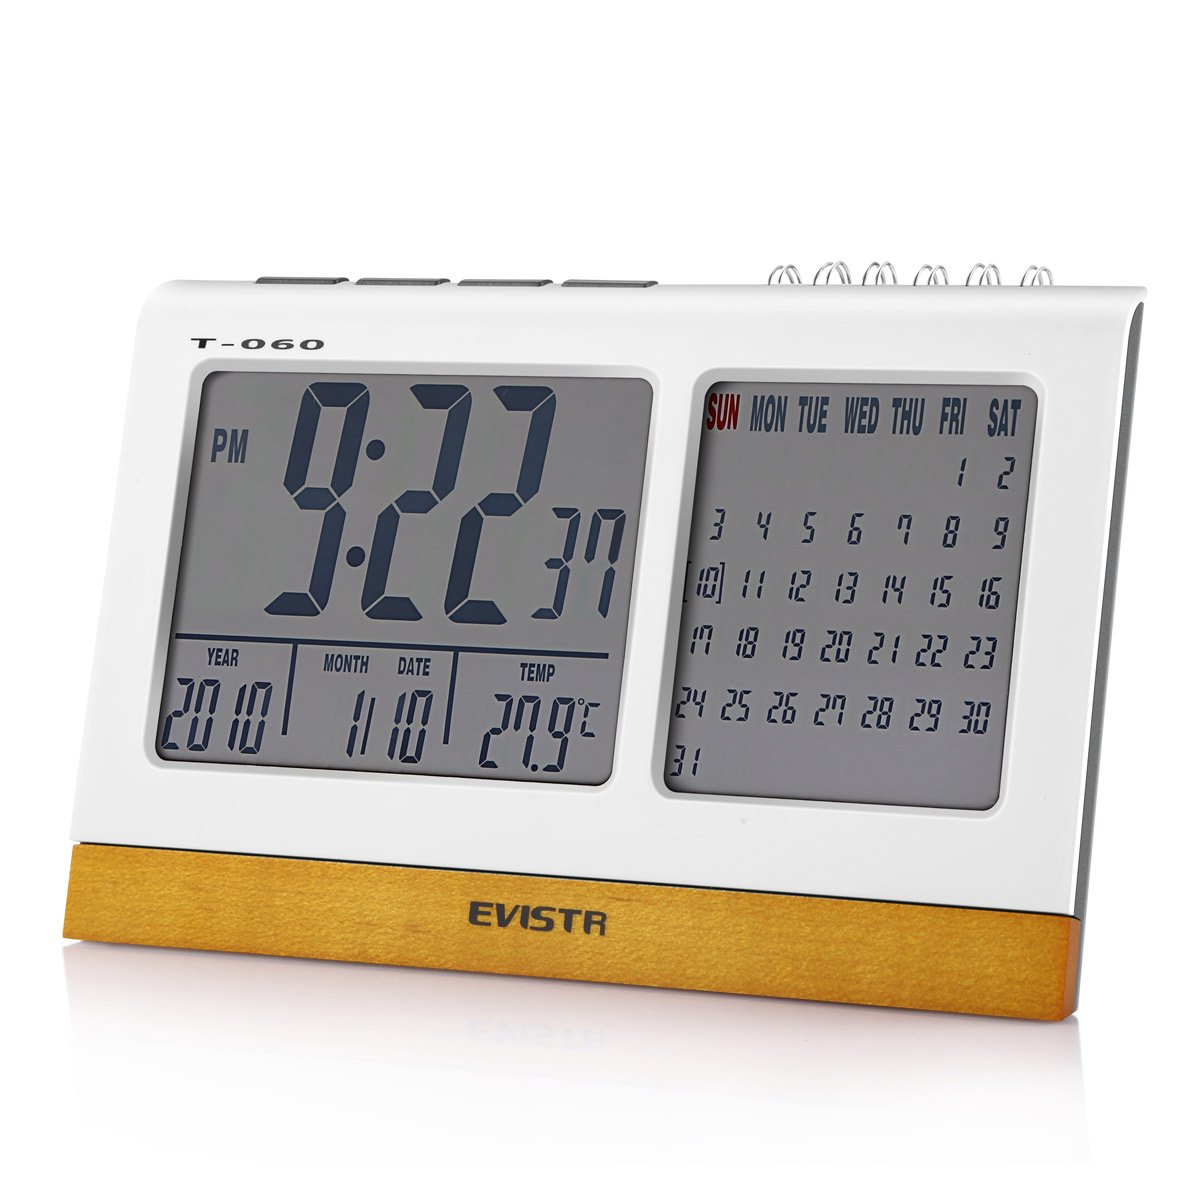 Evistr T-060 Desk Digital Alarm Clock with Calendar & Temperature Display Powered by 3 AAA Battery